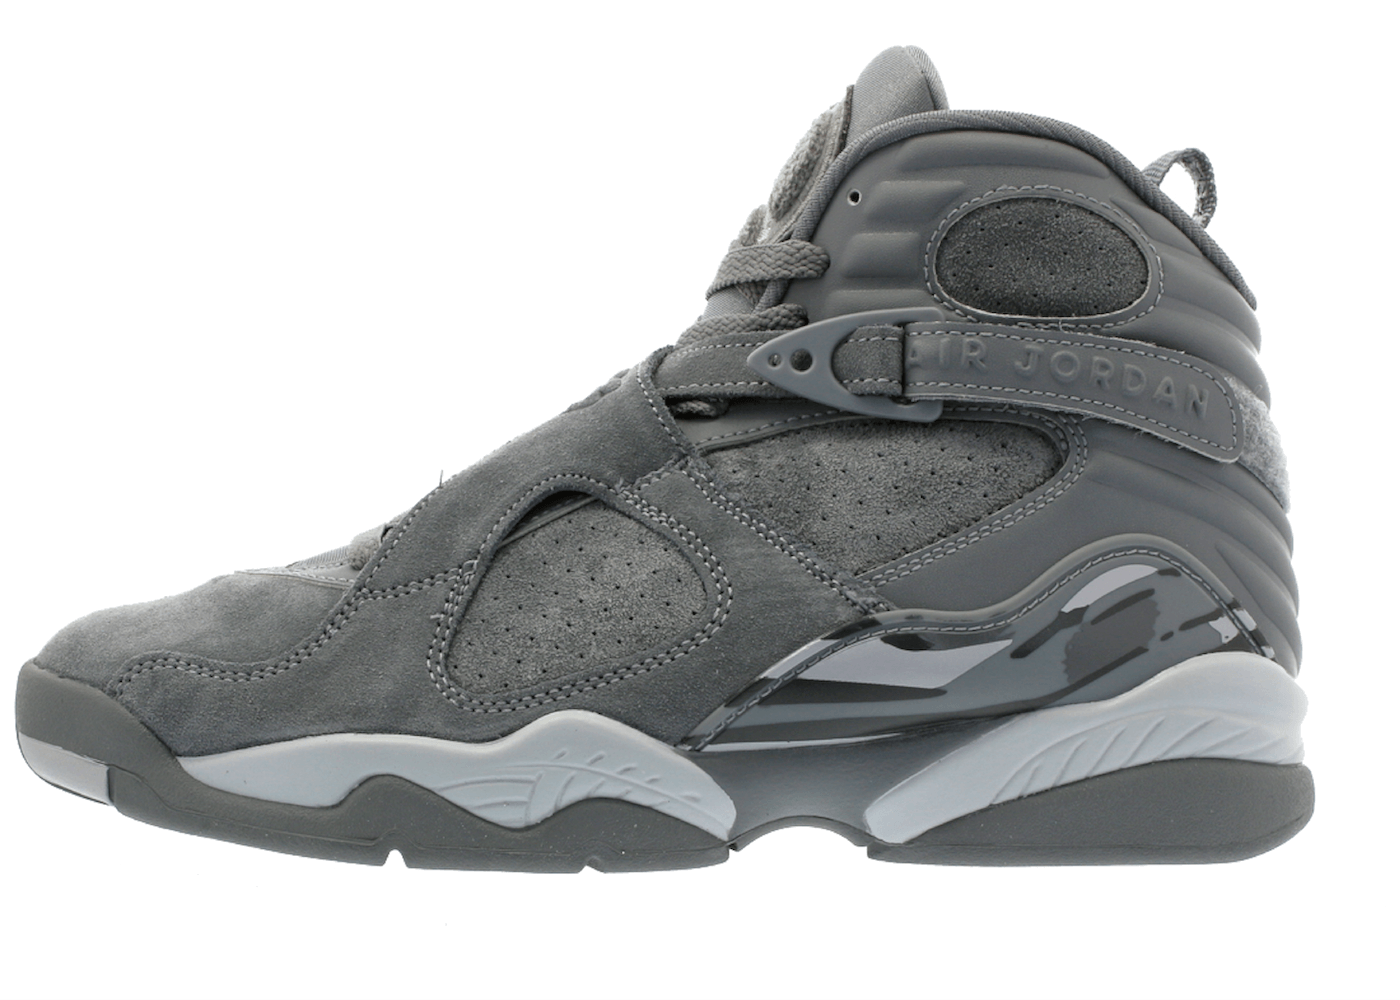 Nike Air Jordan 8 Retro Cool Greyの写真